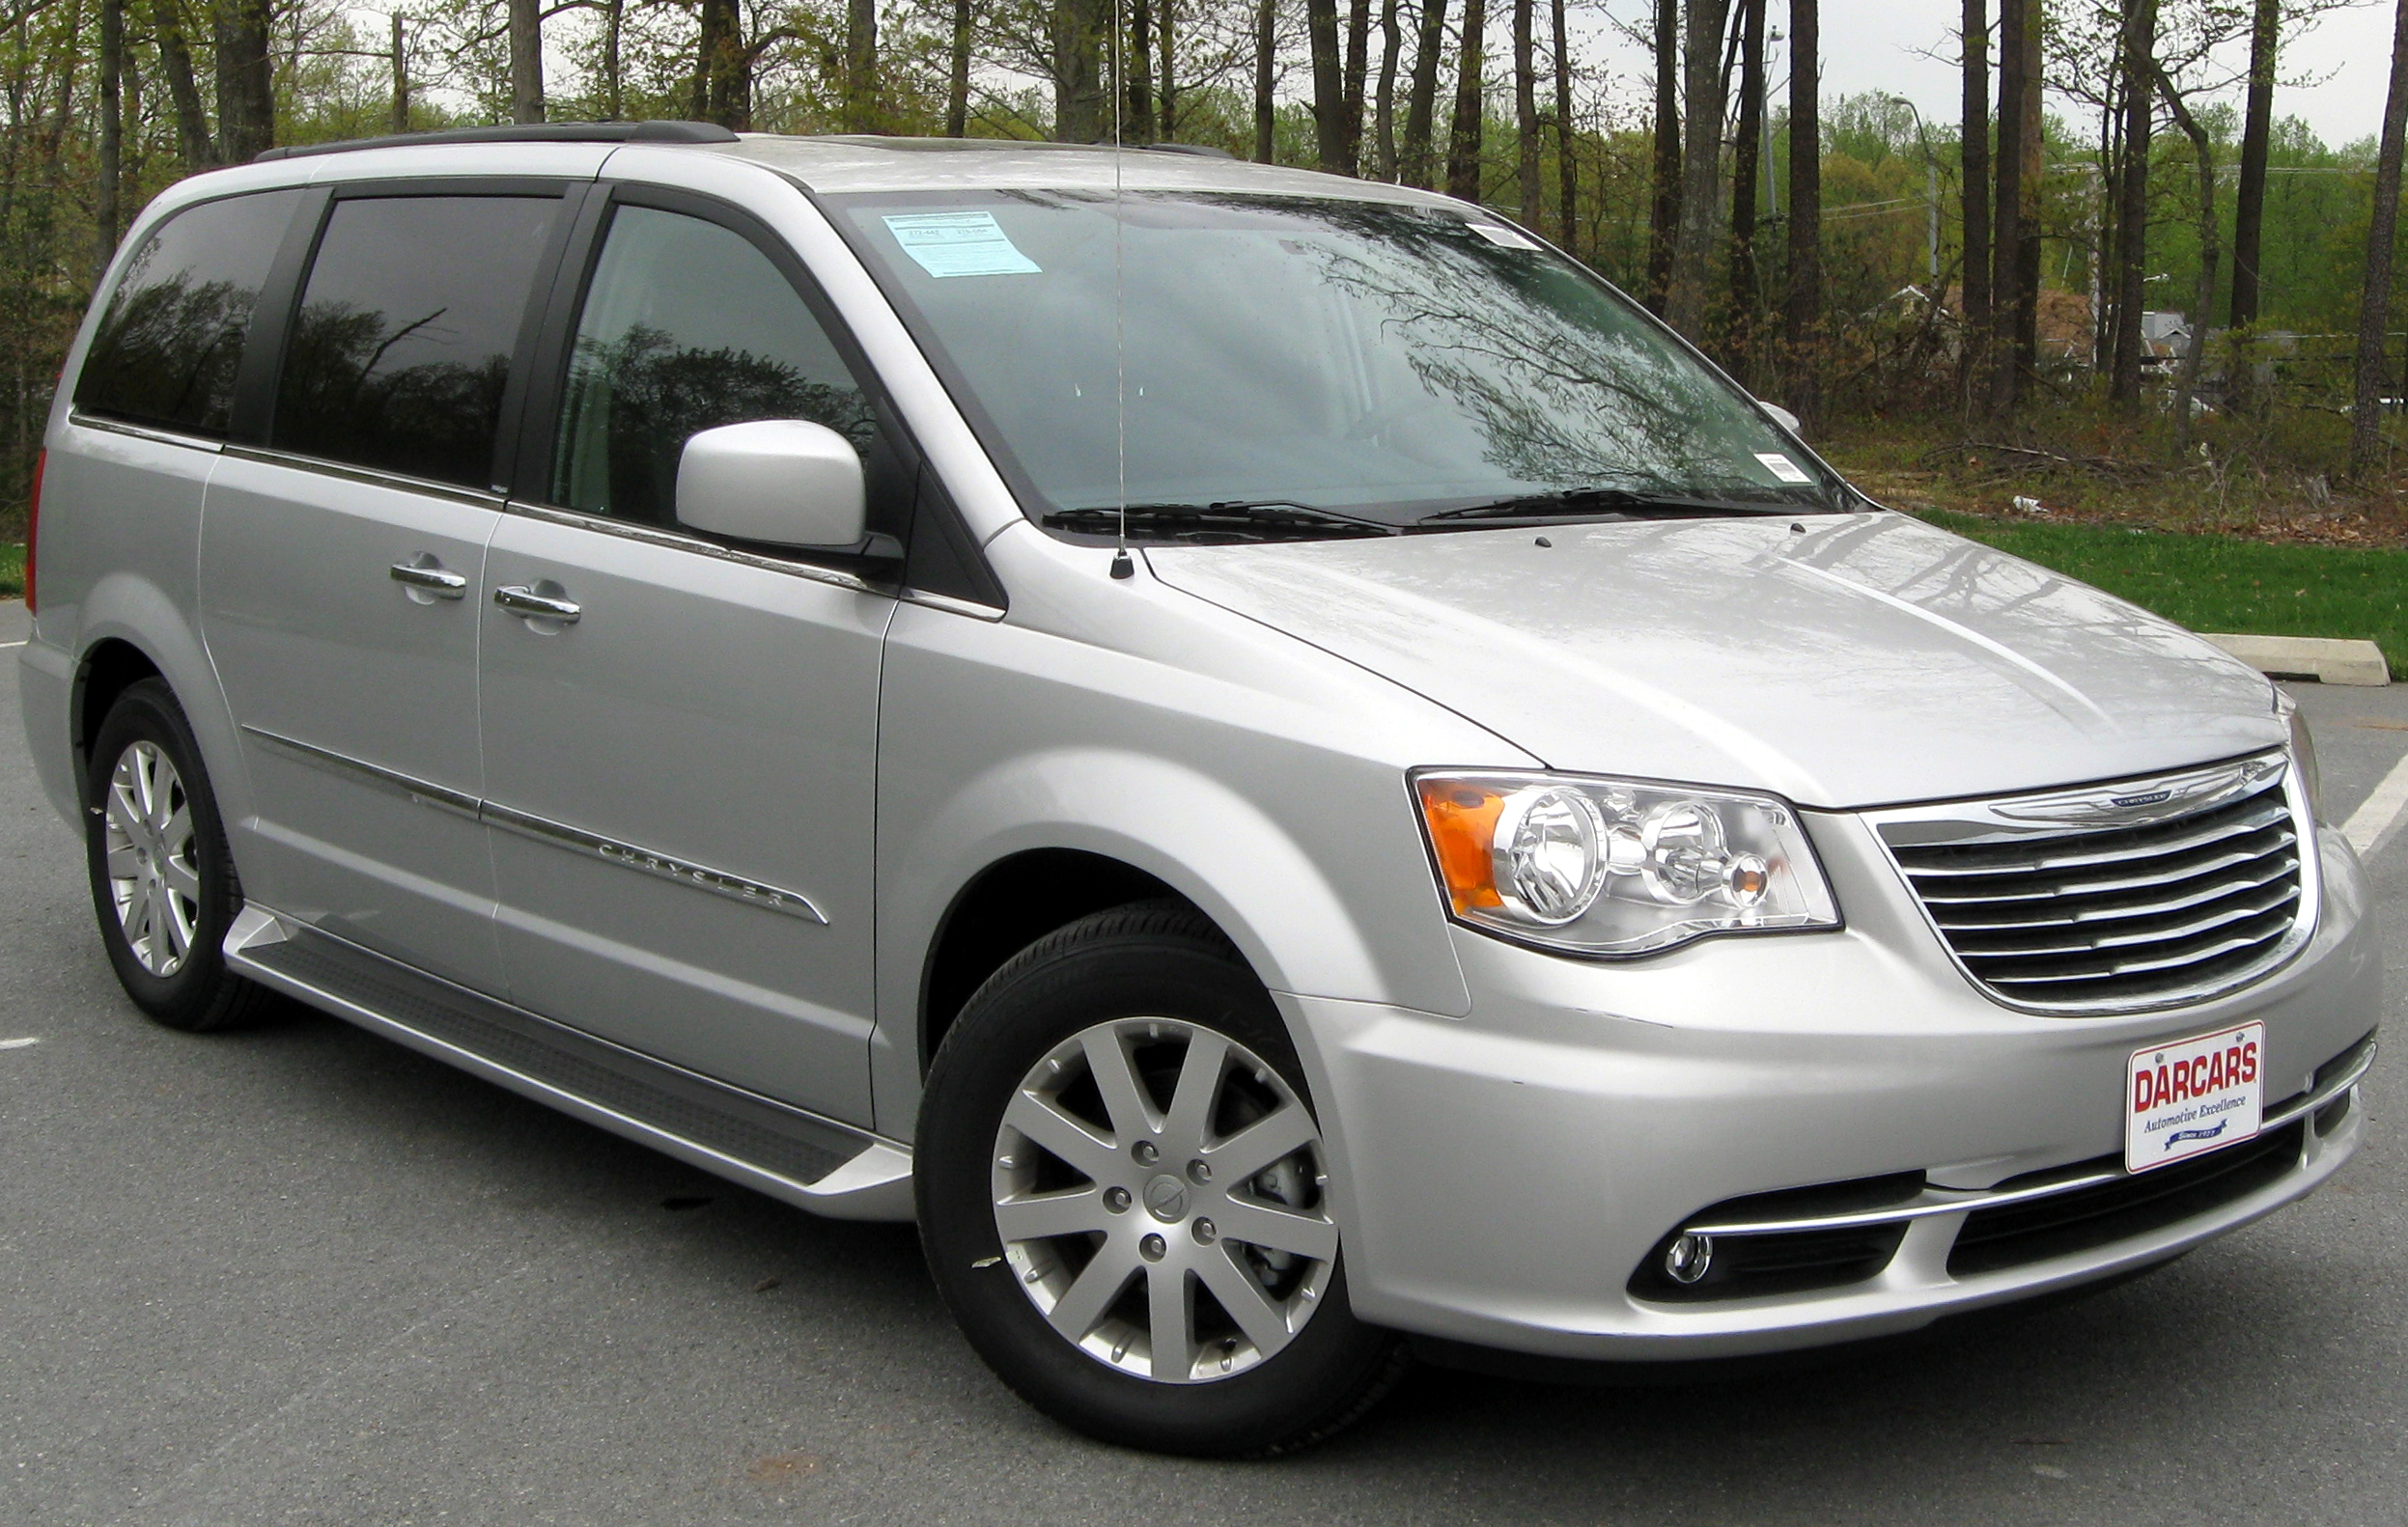 Chrysler Town & Country - Wikipedia